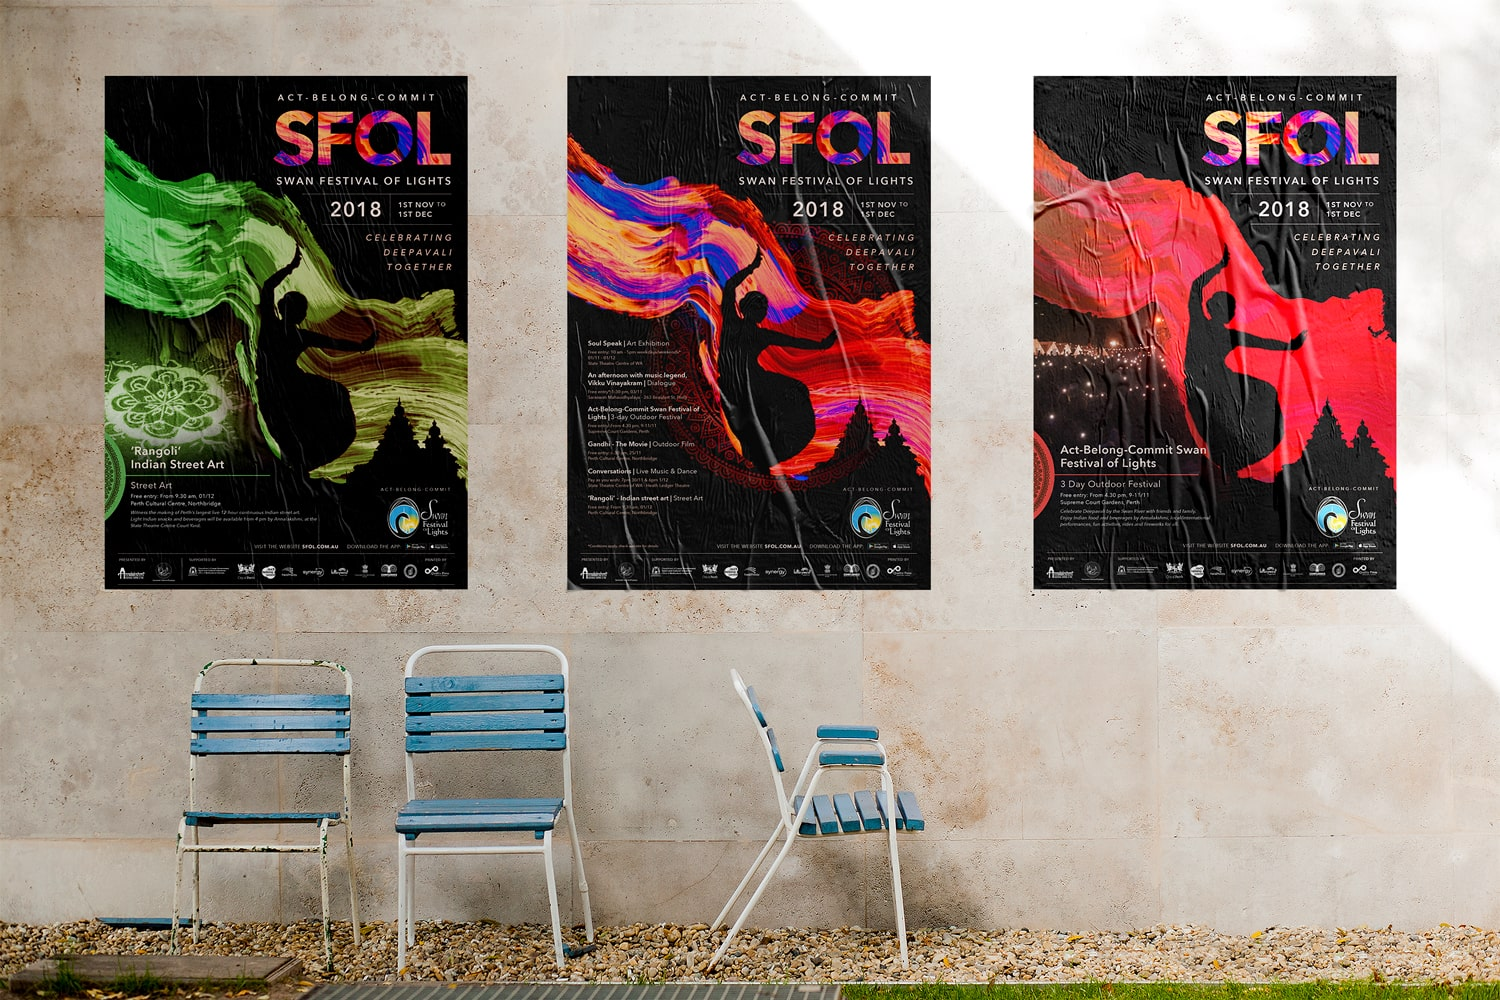 Flametree Creative produces promotional material for events all over Perth. We offer high quality Graphic Design Service to Perth area.